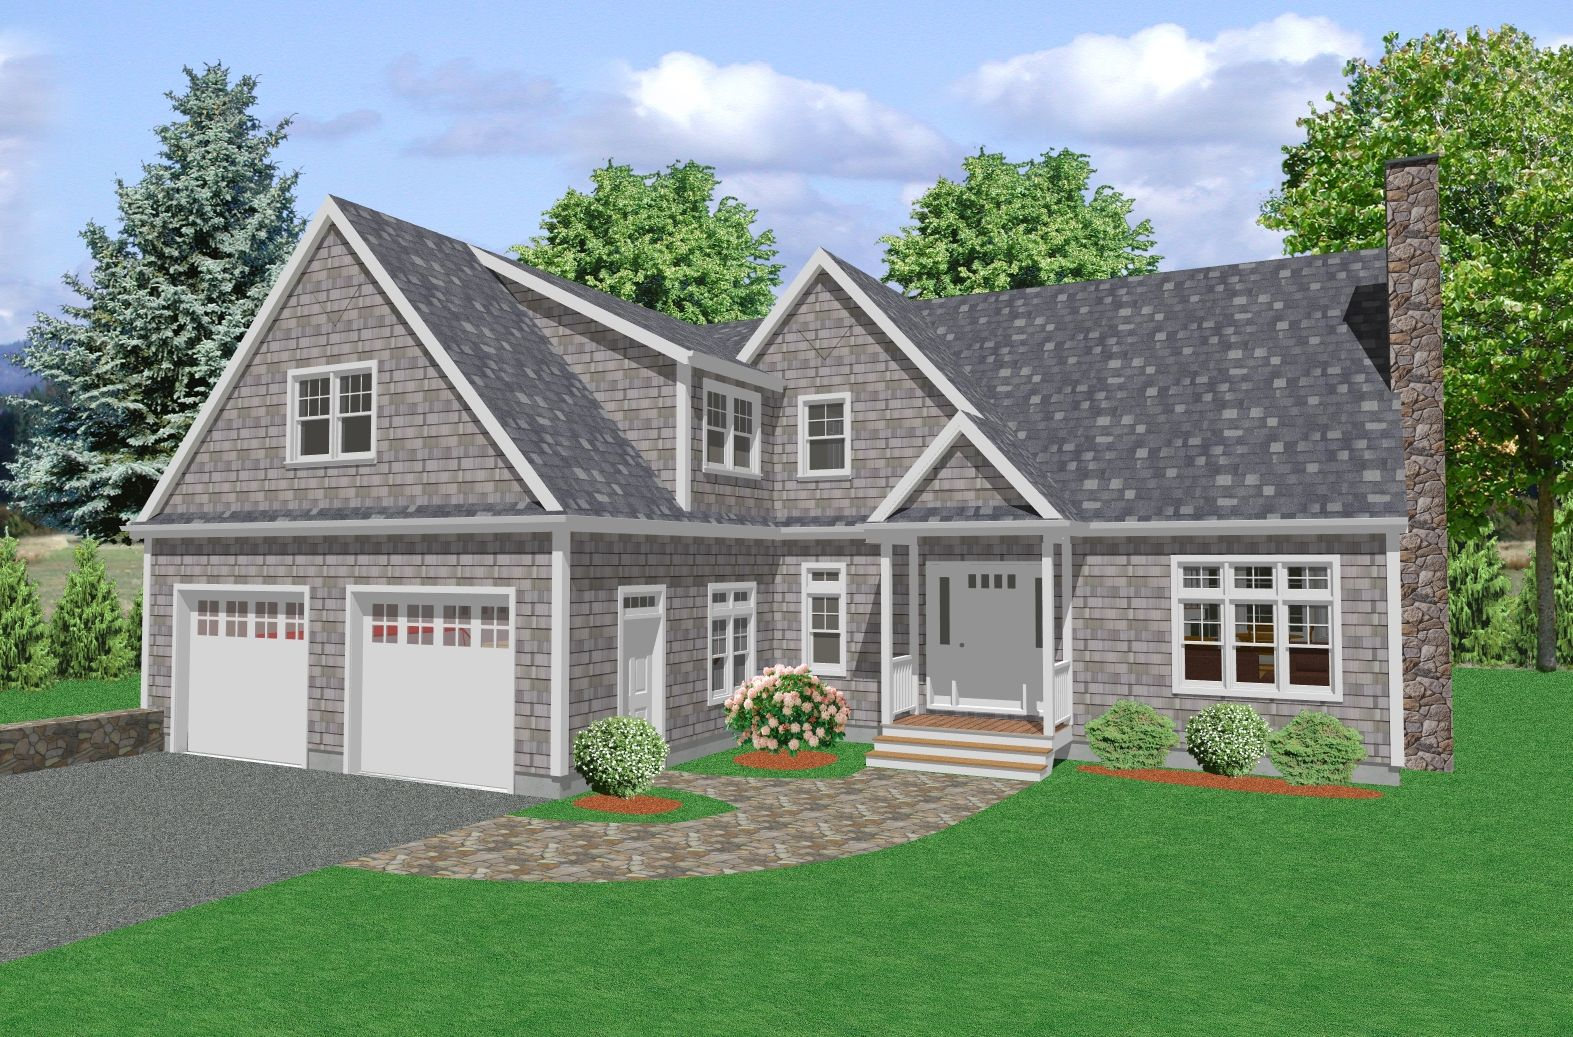 Cape cod style homes house plan two story traditional for 1 5 story cape cod house plans